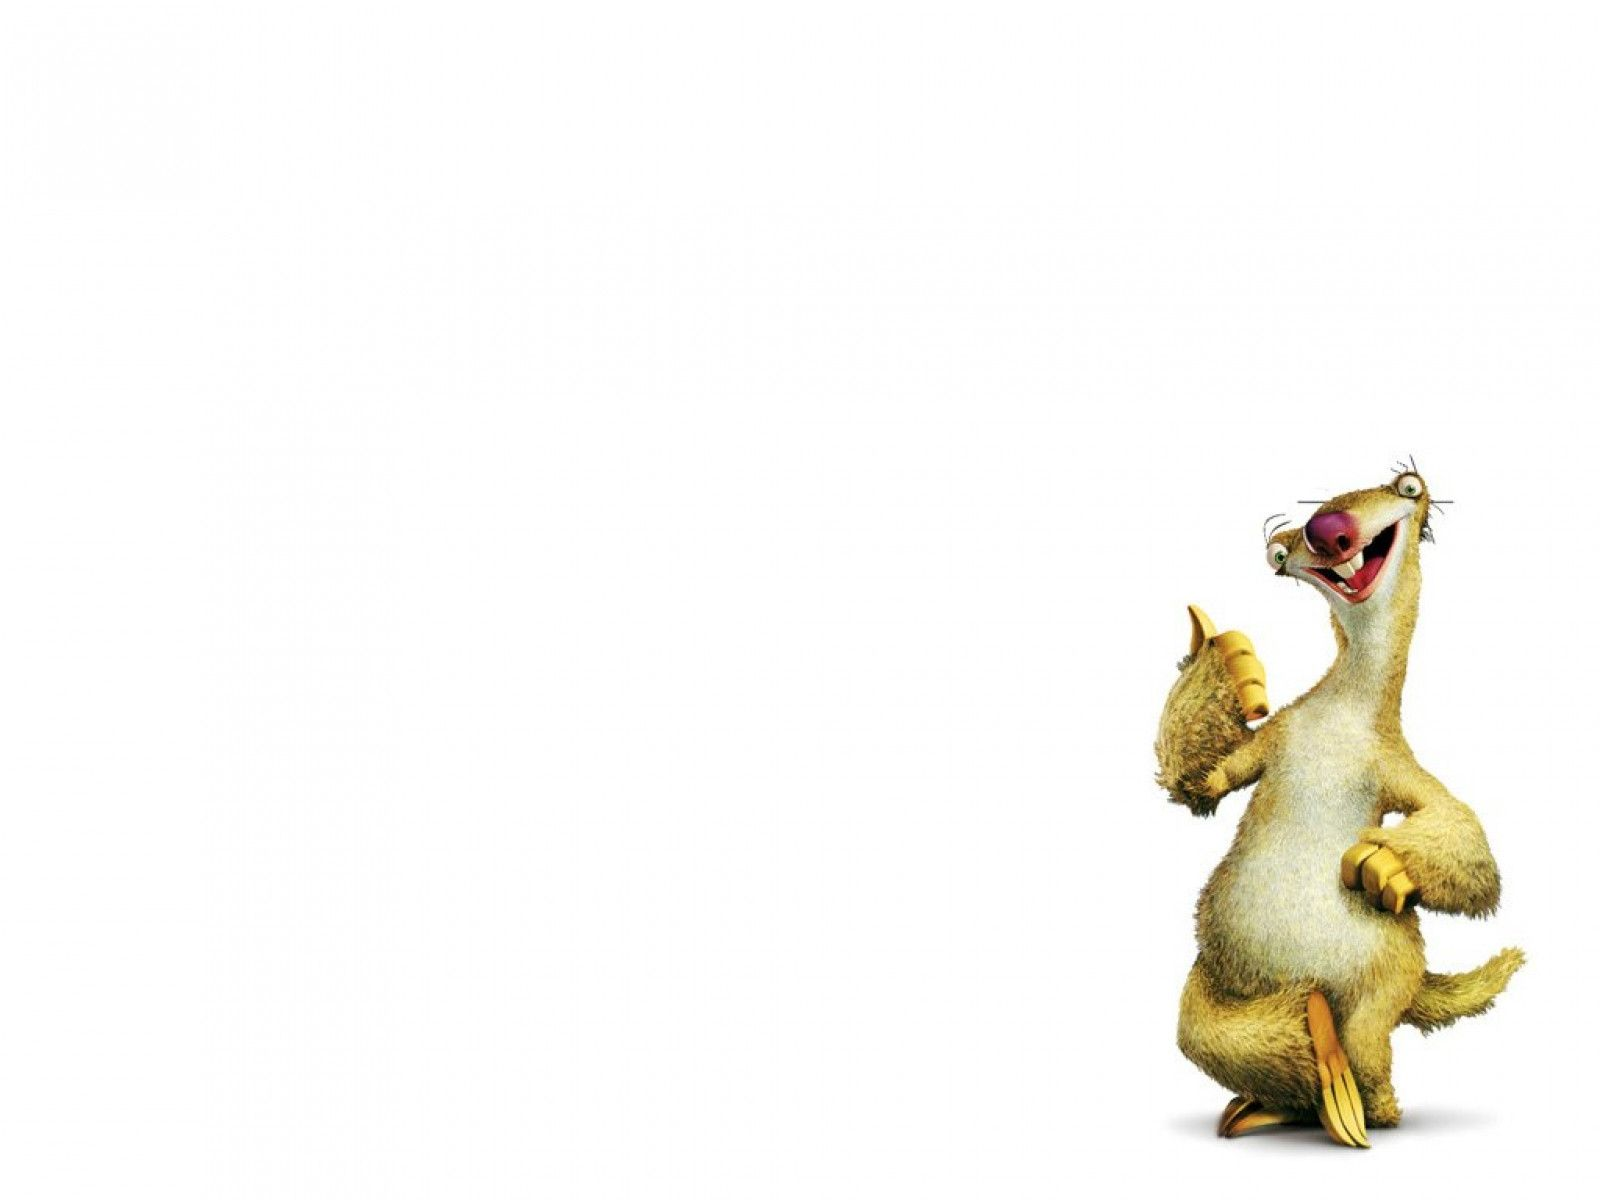 Ice Age Sid Wallpapers - Free download latest Ice Age Sid Wallpapers ...